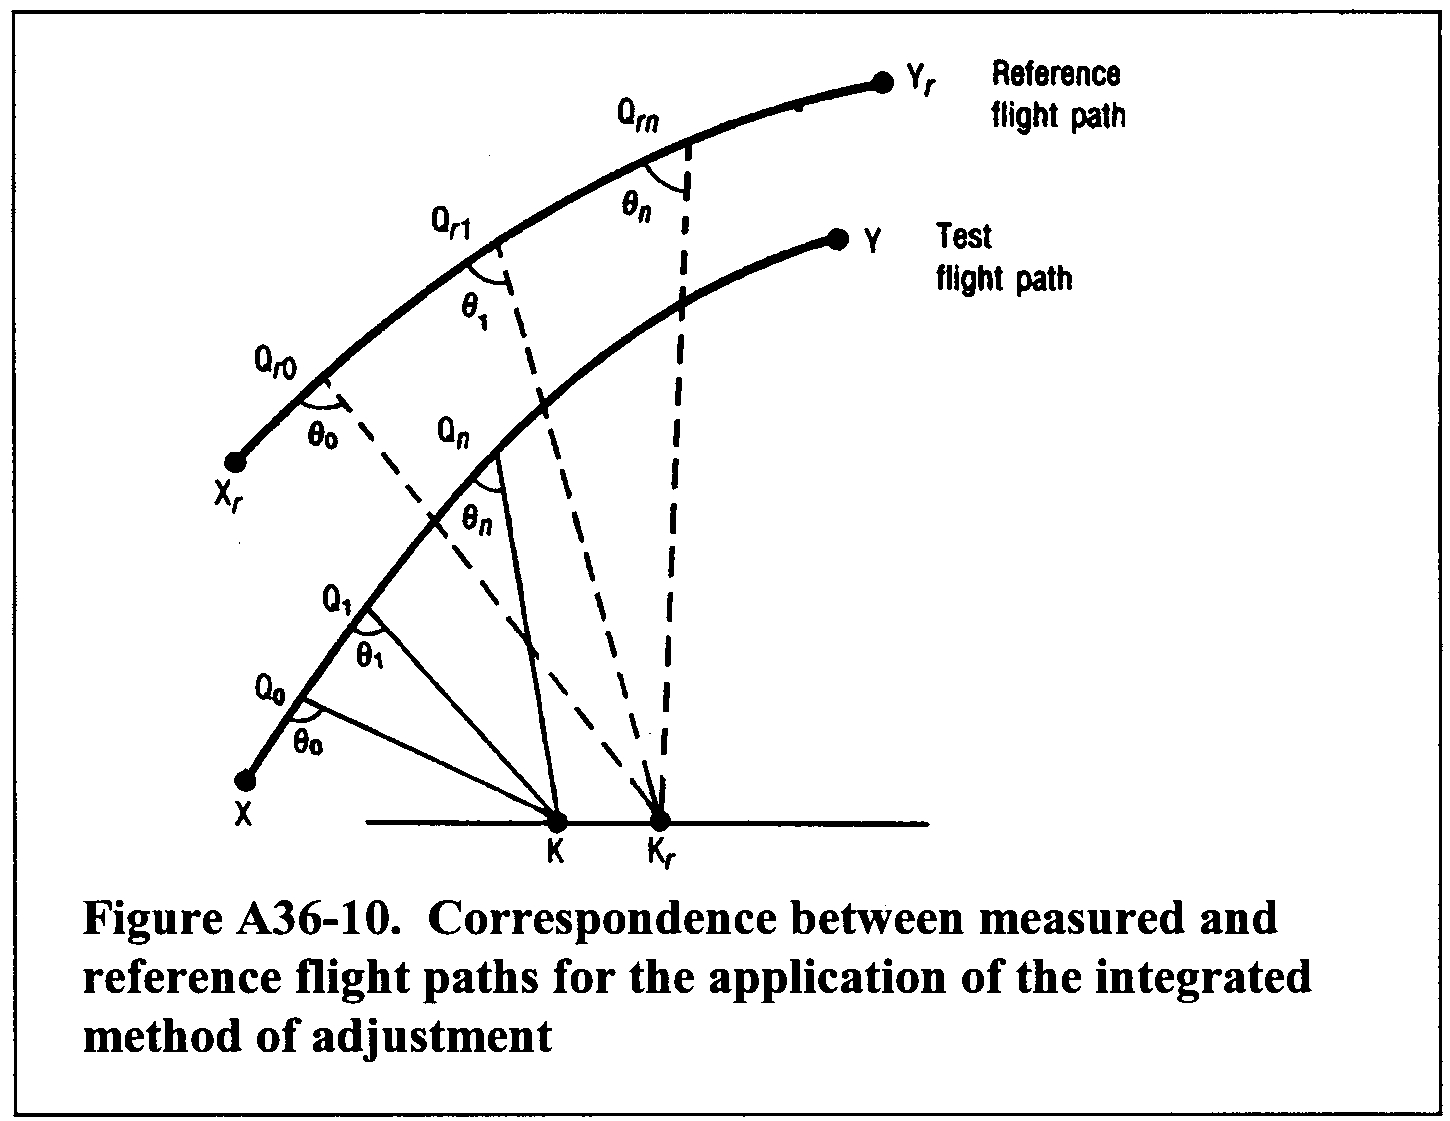 Graphic of (a) The portions of the test flight path and the reference flight path described in paragraph (a)(1) and (2), and illustrated in Figure A36-10, include the noise time history that is relevant to the calculation of flyover and approach EPNL. In figure A36-10